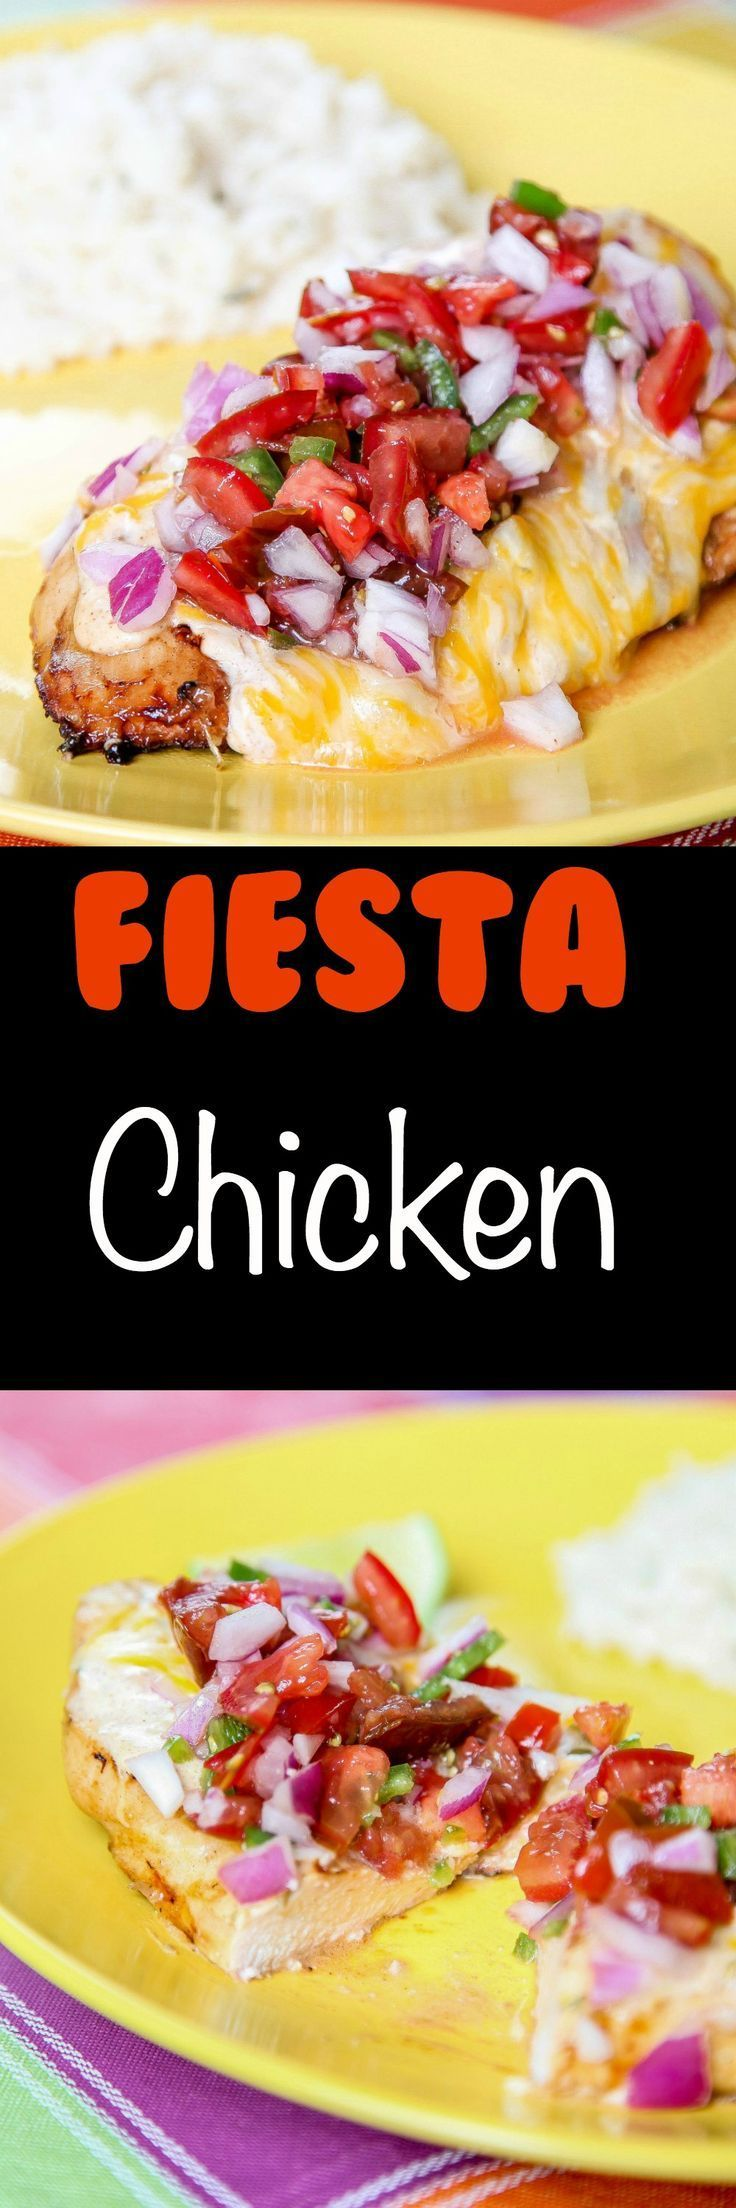 Fiesta Lime Chicken (Applebees Copycat): Juicy chicken topped with melty cheese and spicy pico. The most delicious thing you can do with chicken in 30 minutes!